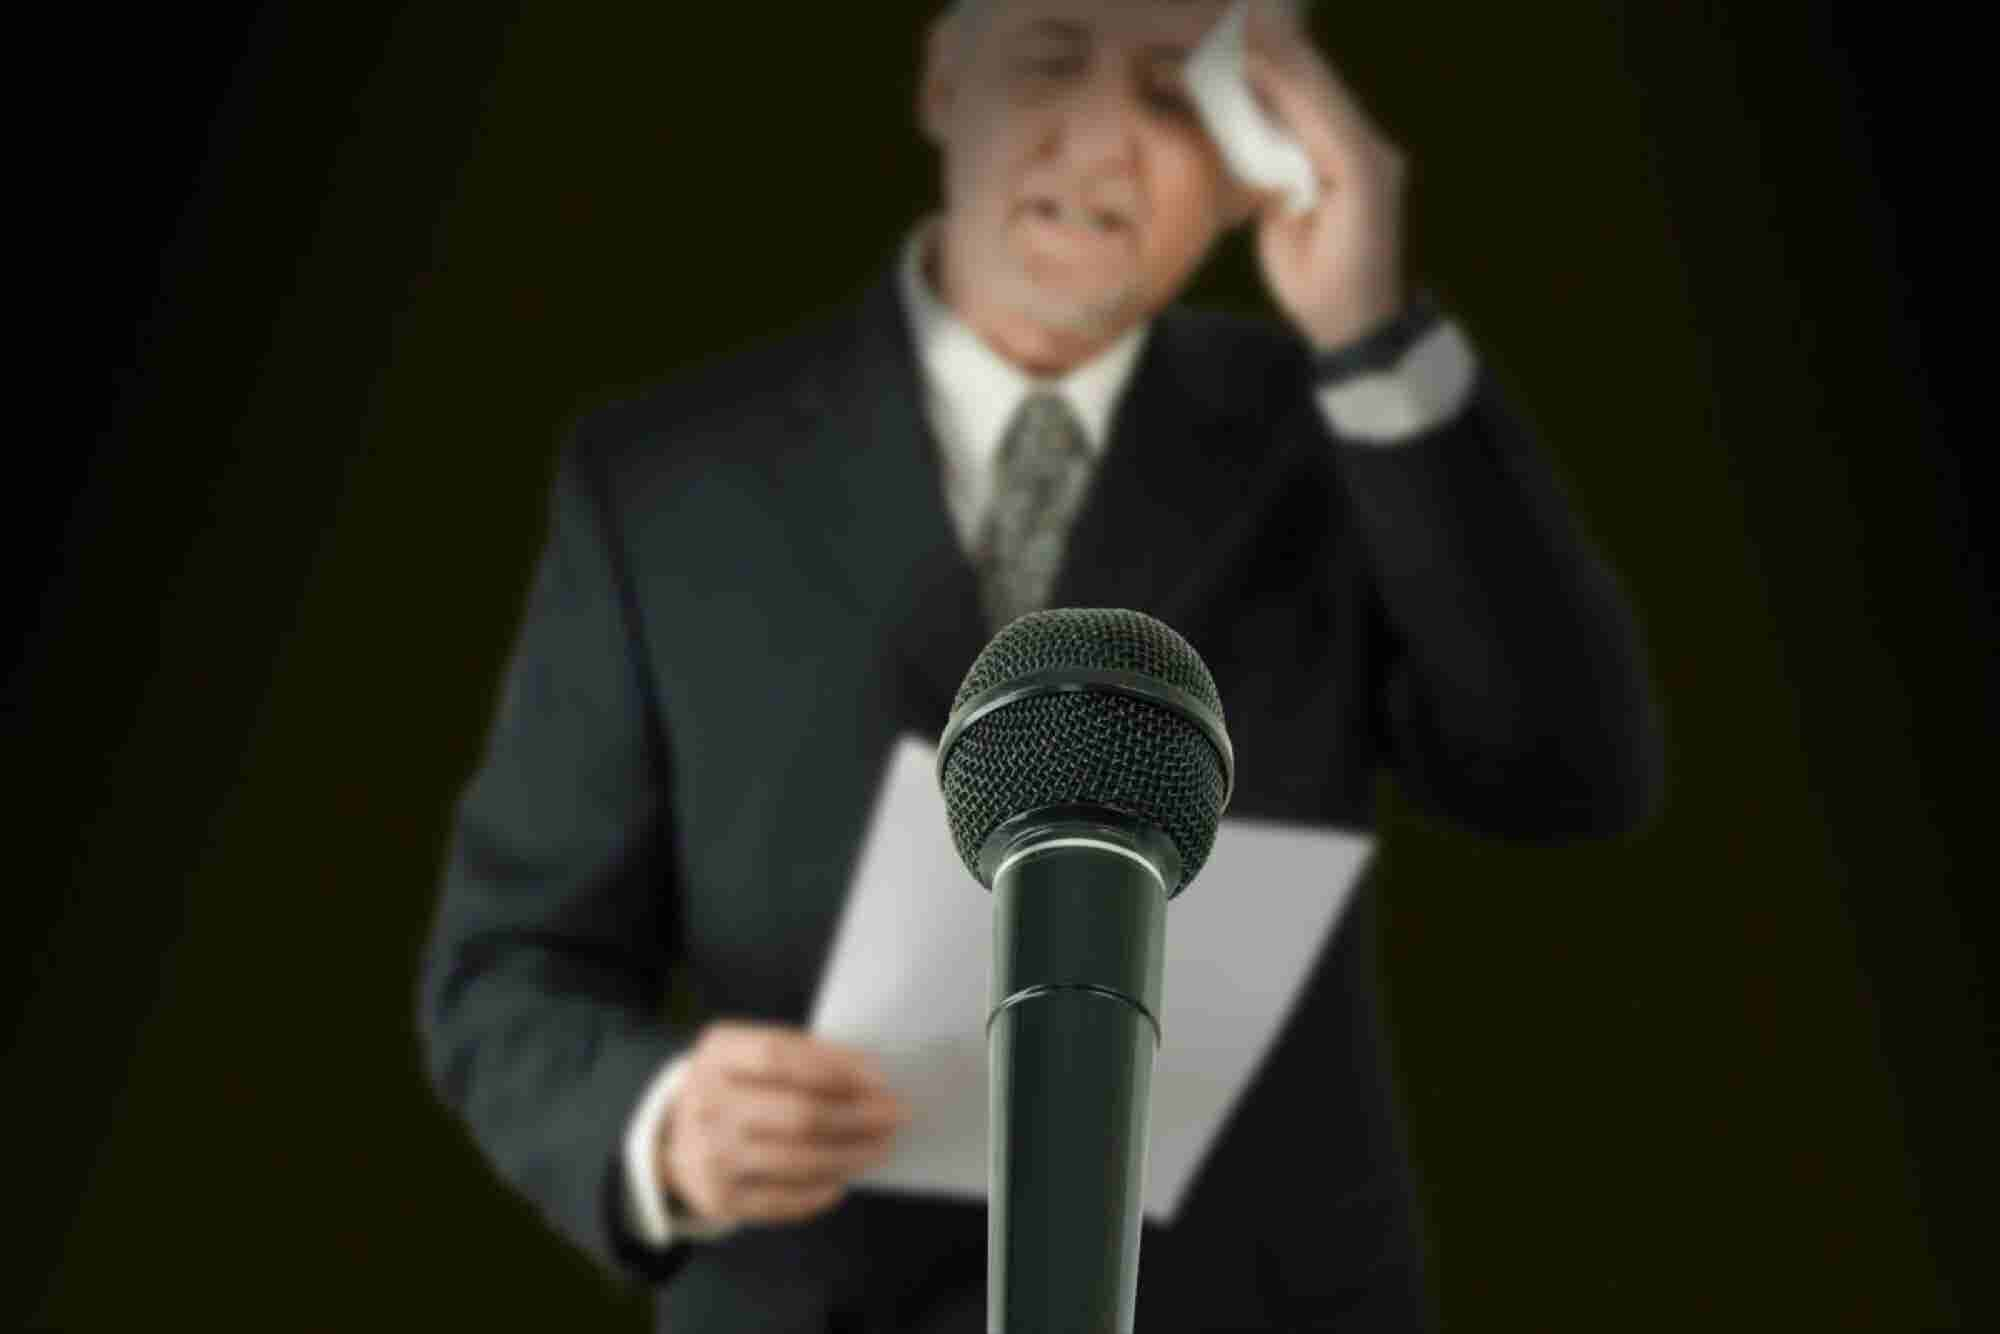 Overcoming Stage Fright: Three Steps To Become A Better Speaker On Stage